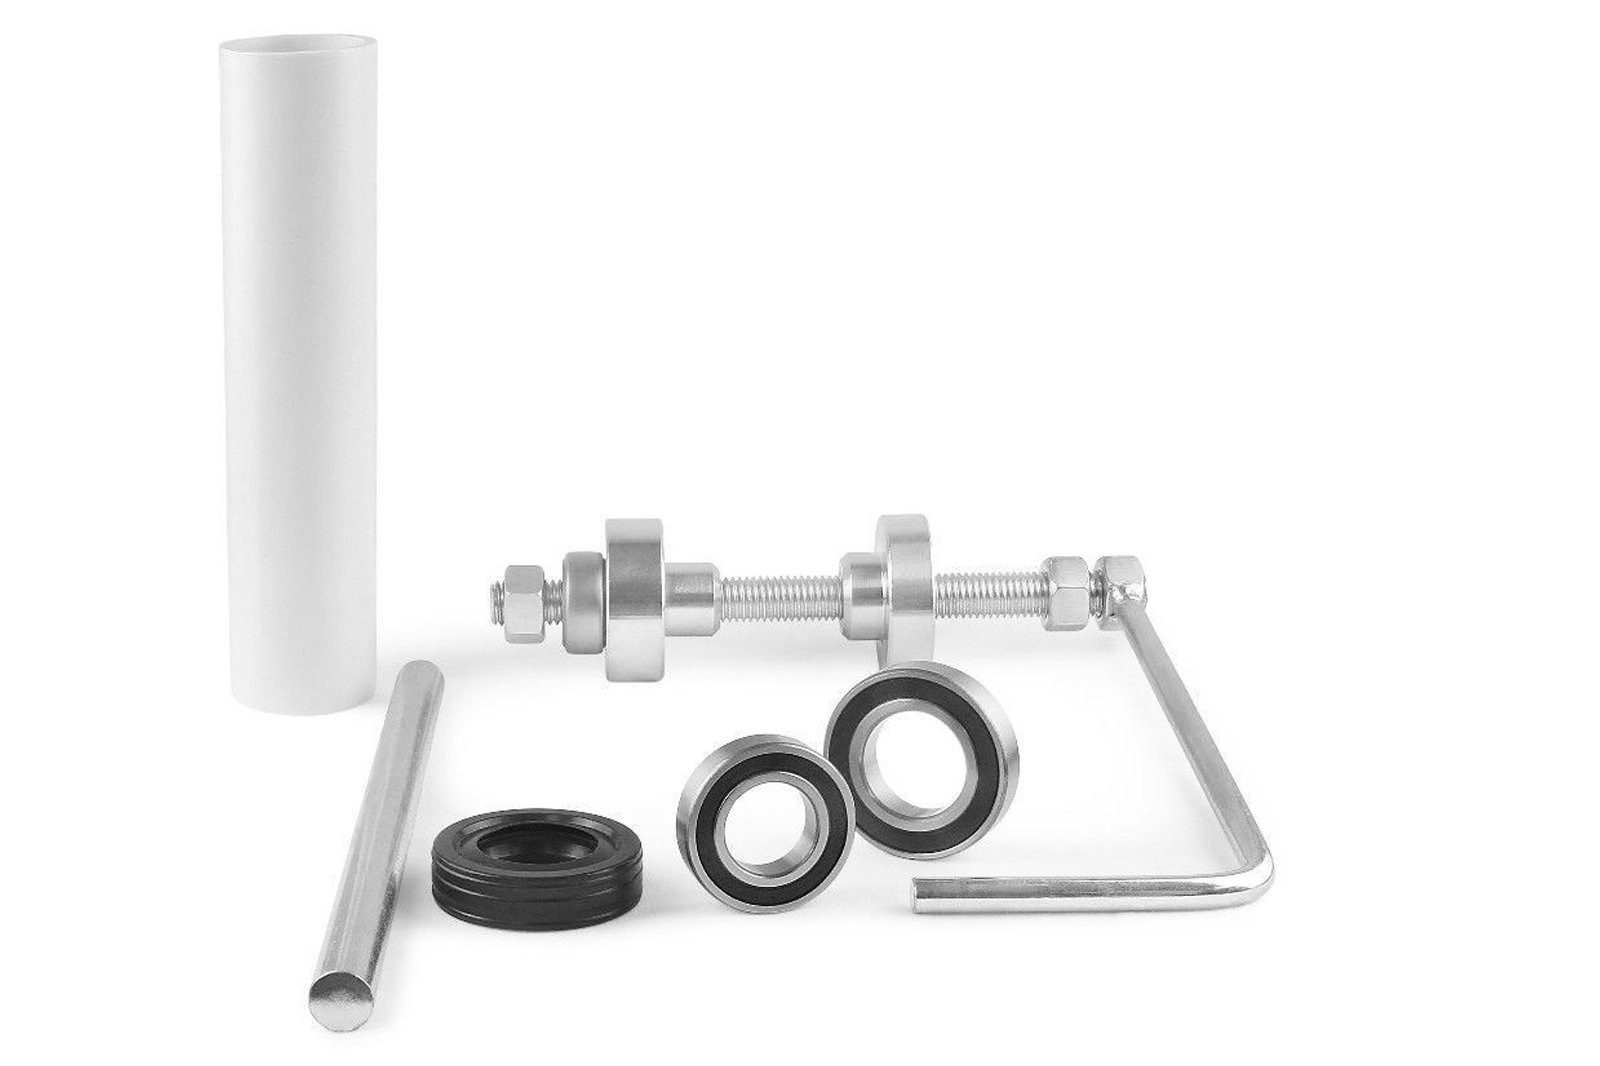 Ximoon Bearings and Install Tool Fits Whirlpool,Maytag, Cabrio Bravo W10447783, AP5325072, 2119011, PS3503307